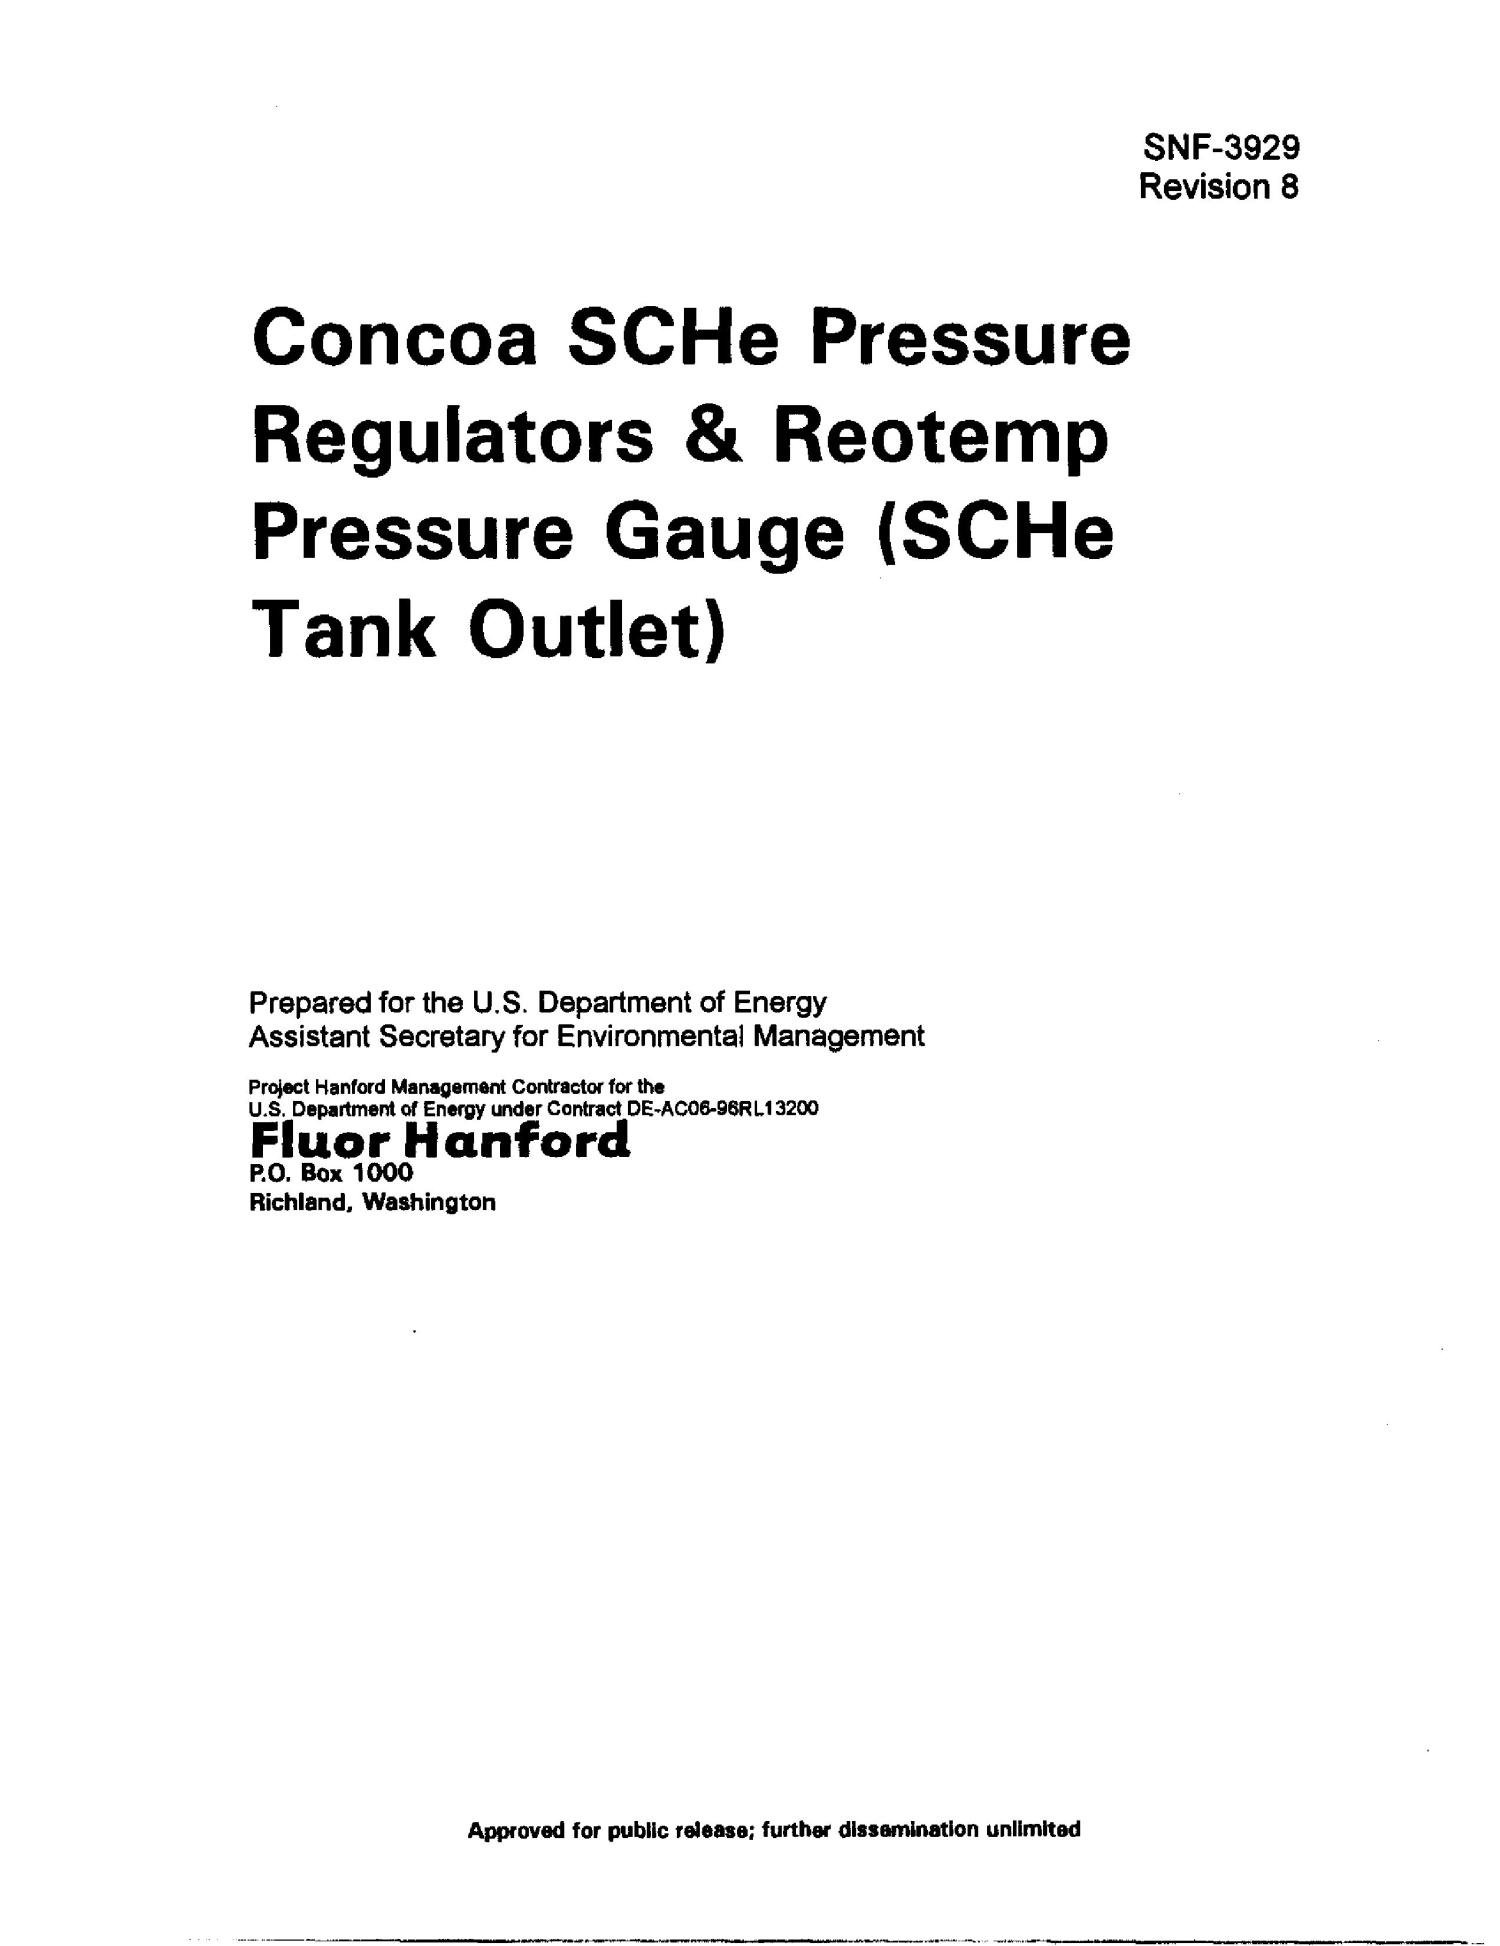 Concoa SCHe Pressure Regulators and Reotemp Pressure Gauge (SCHe Tank Outlet)                                                                                                      [Sequence #]: 4 of 17